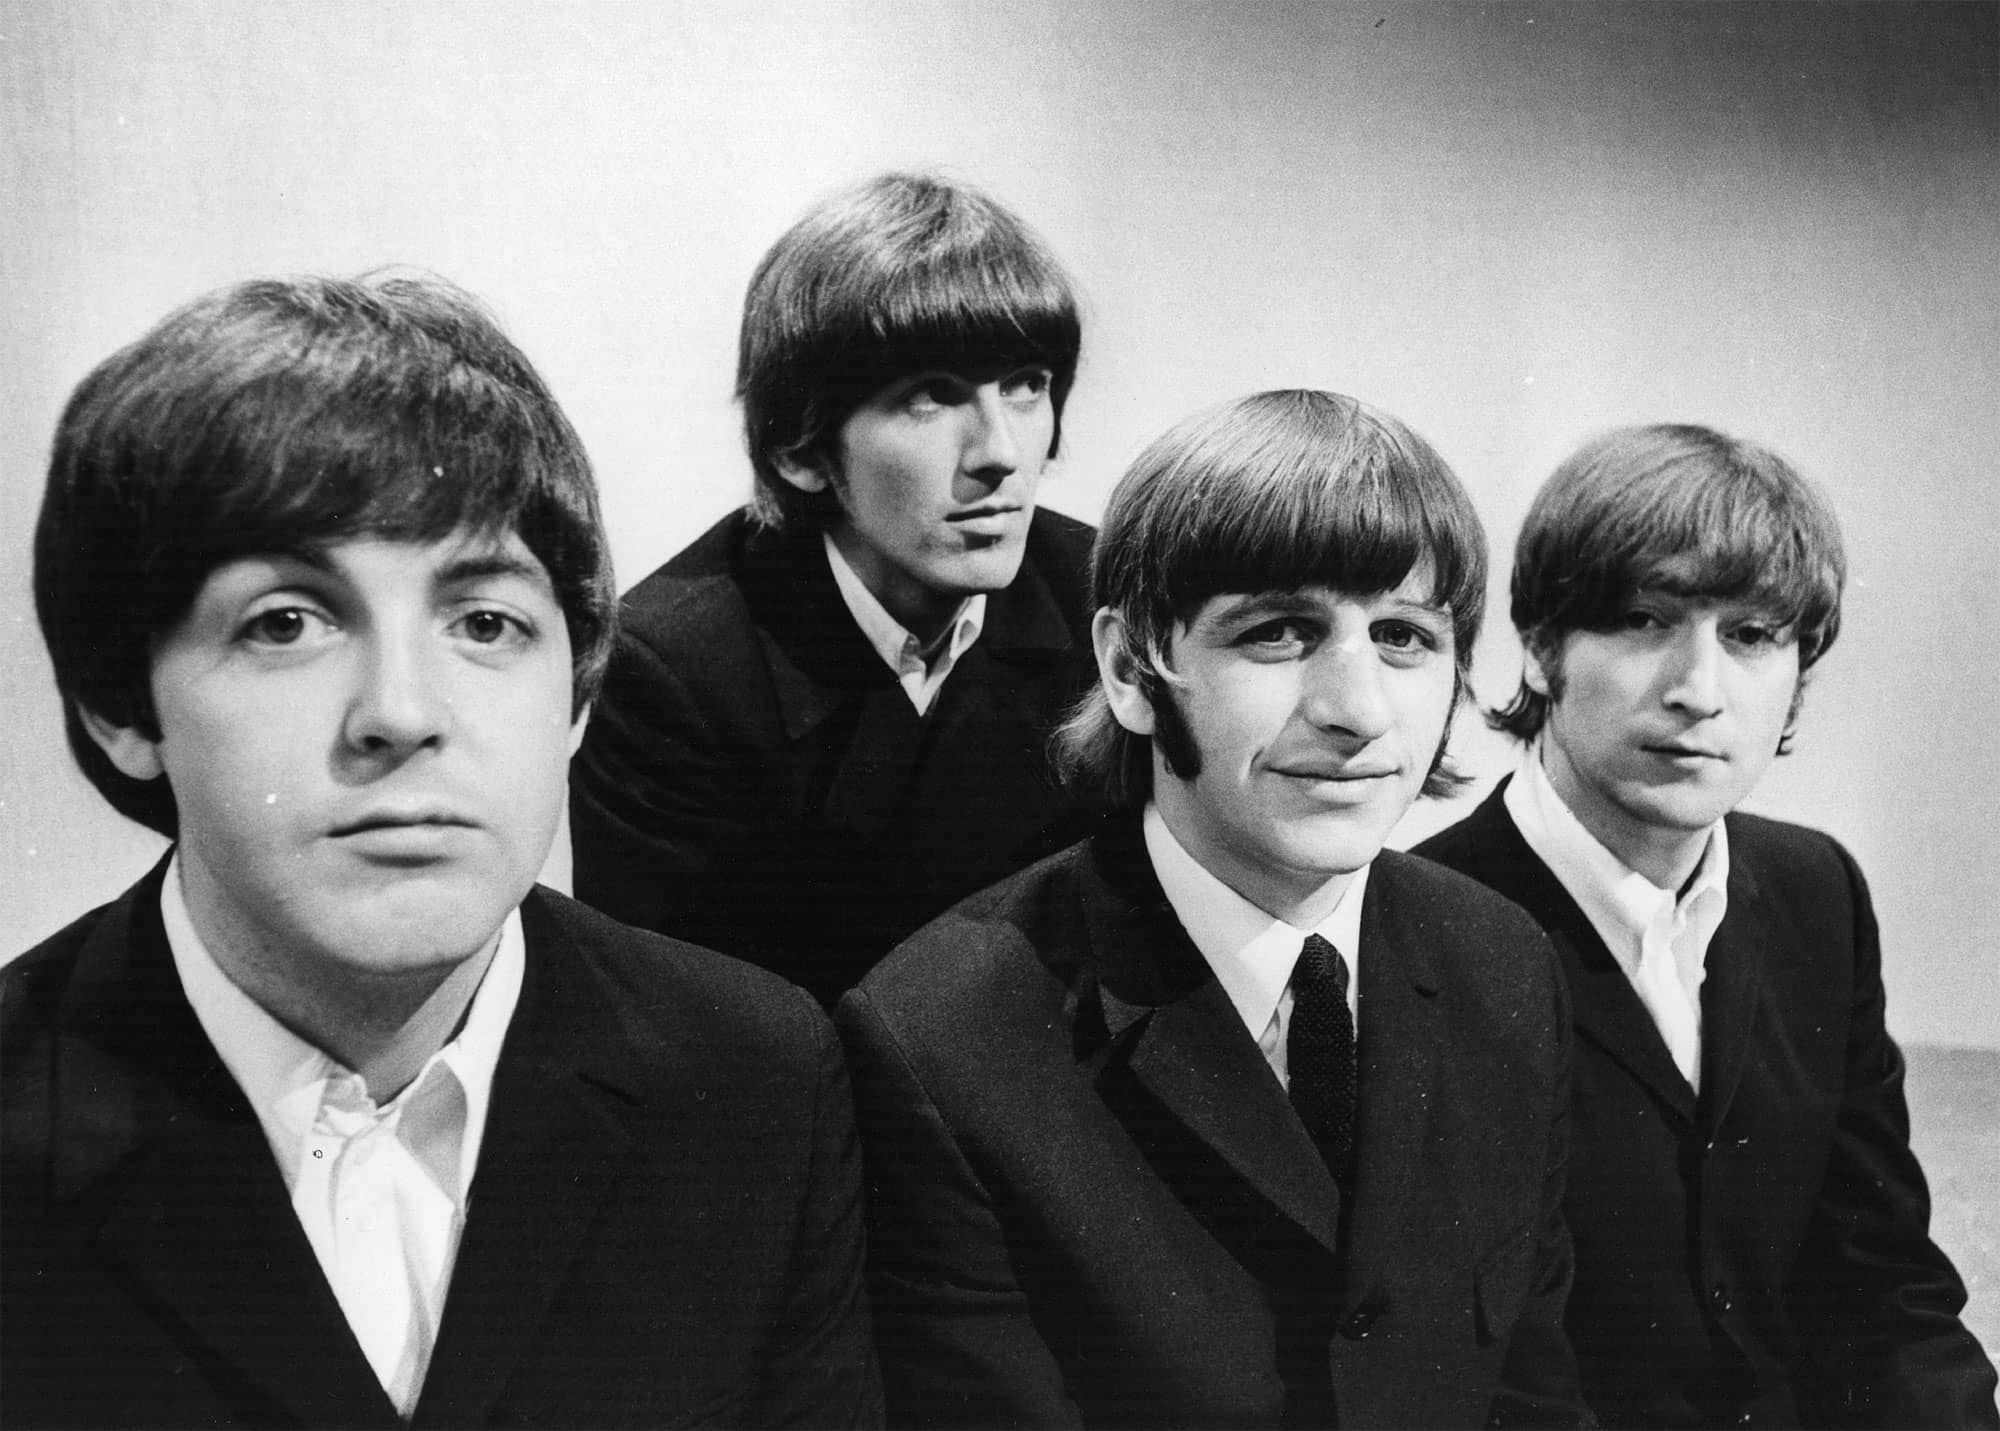 Paul McCartney revela secretos sexuales de la banda The Beatles